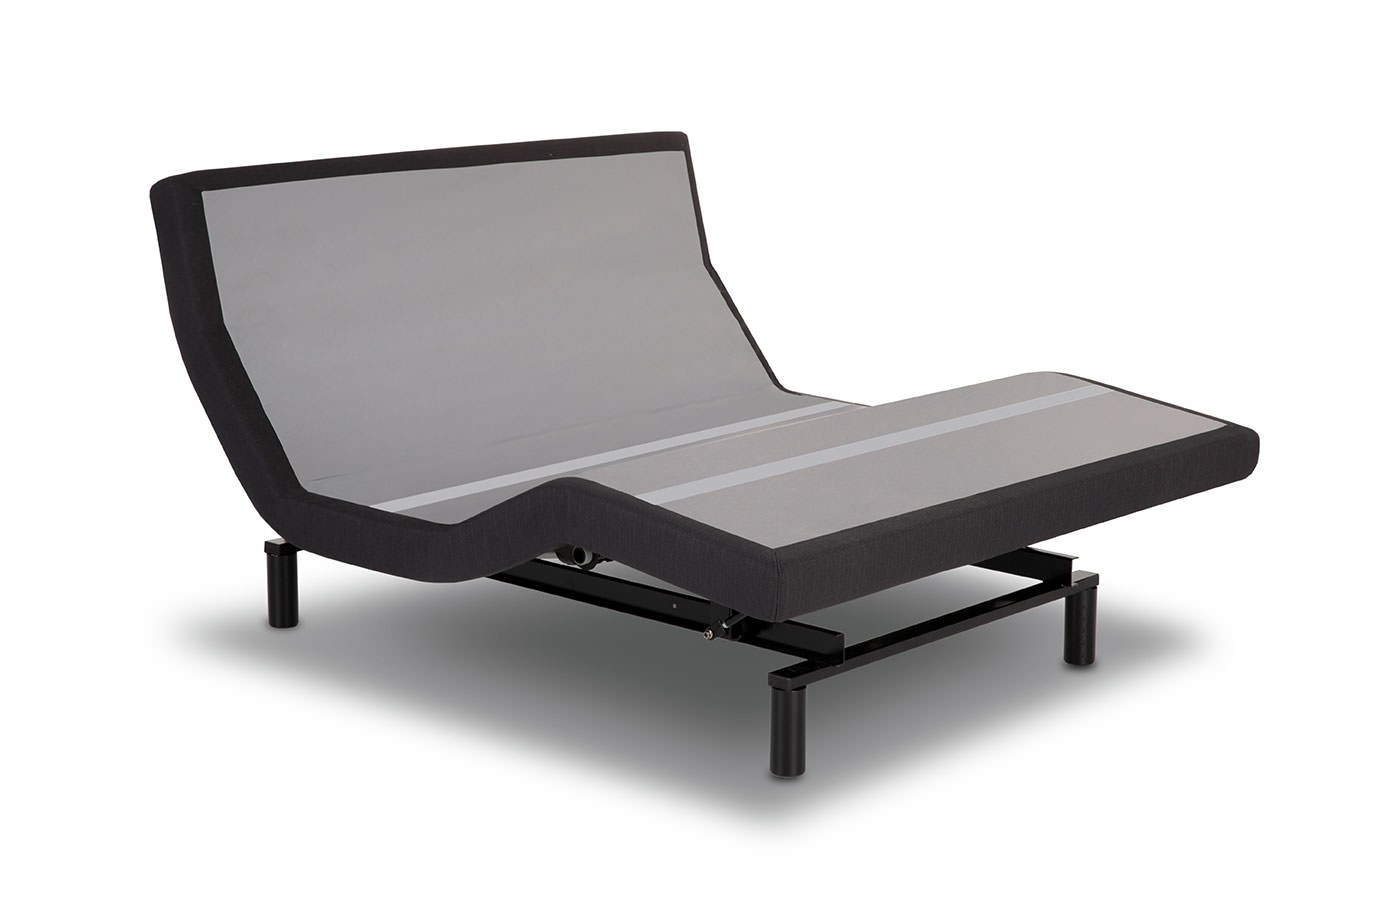 adjustable beds Houston